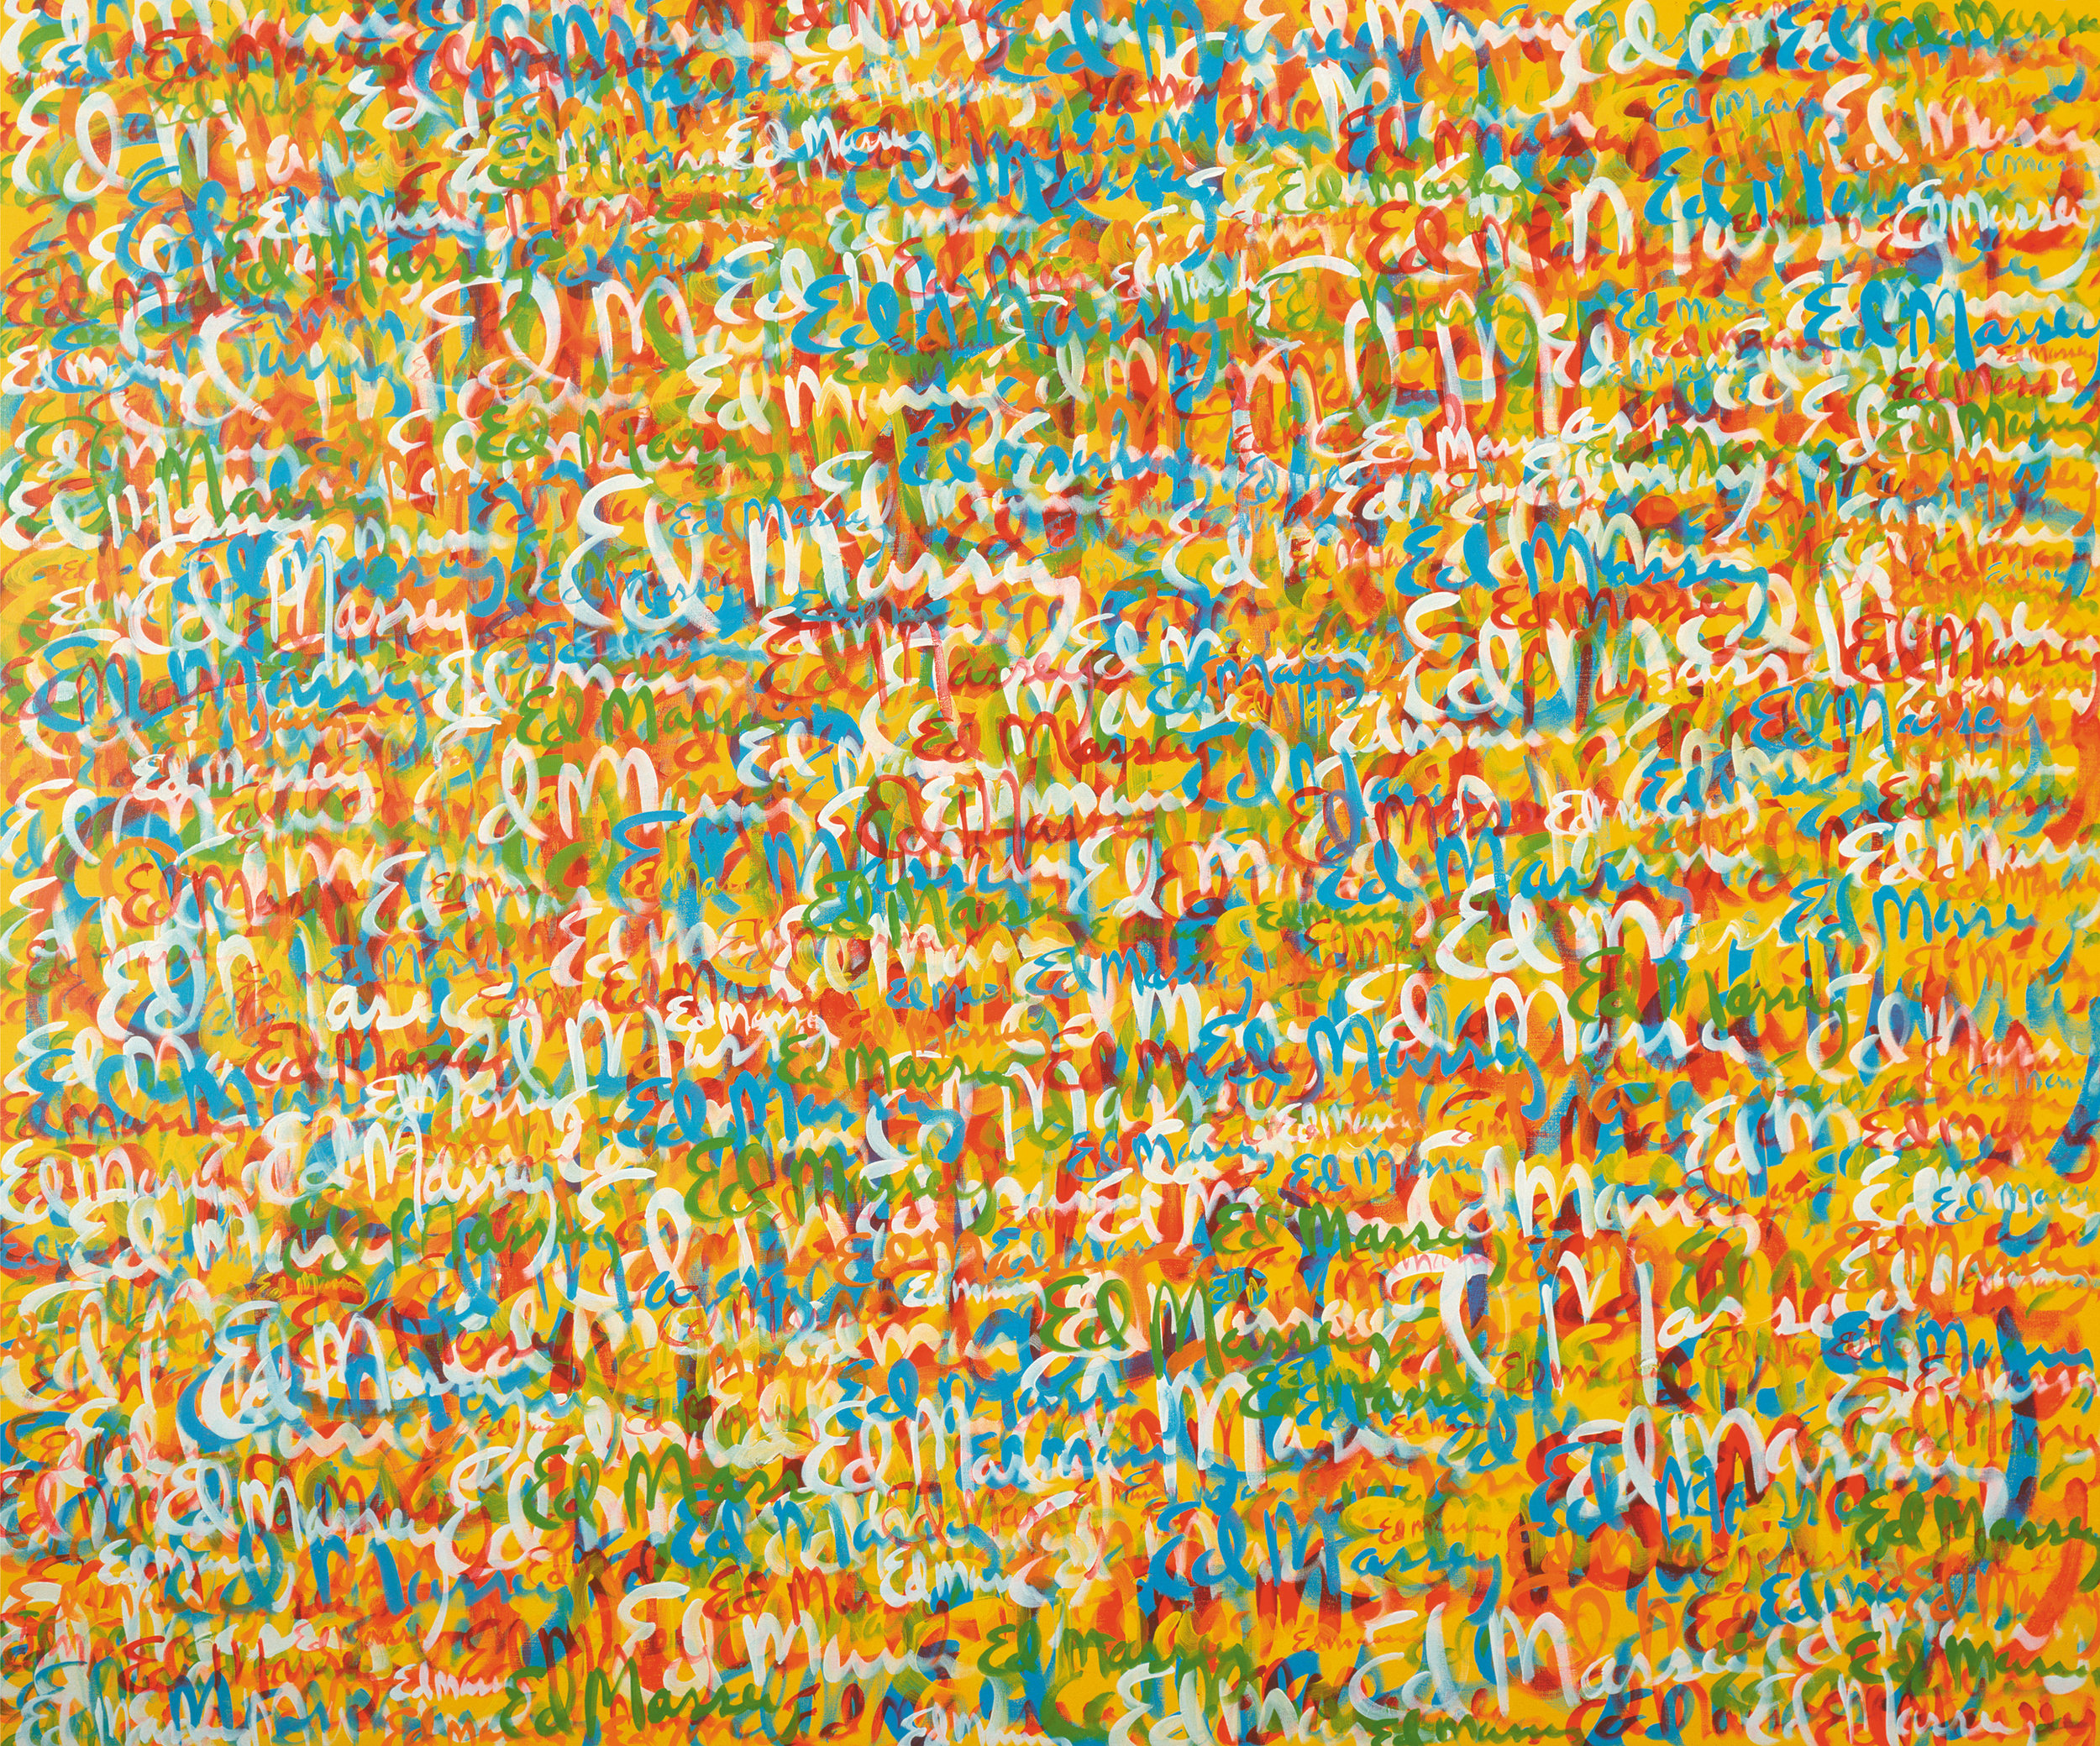 Signature Painting Colorfield, 2001